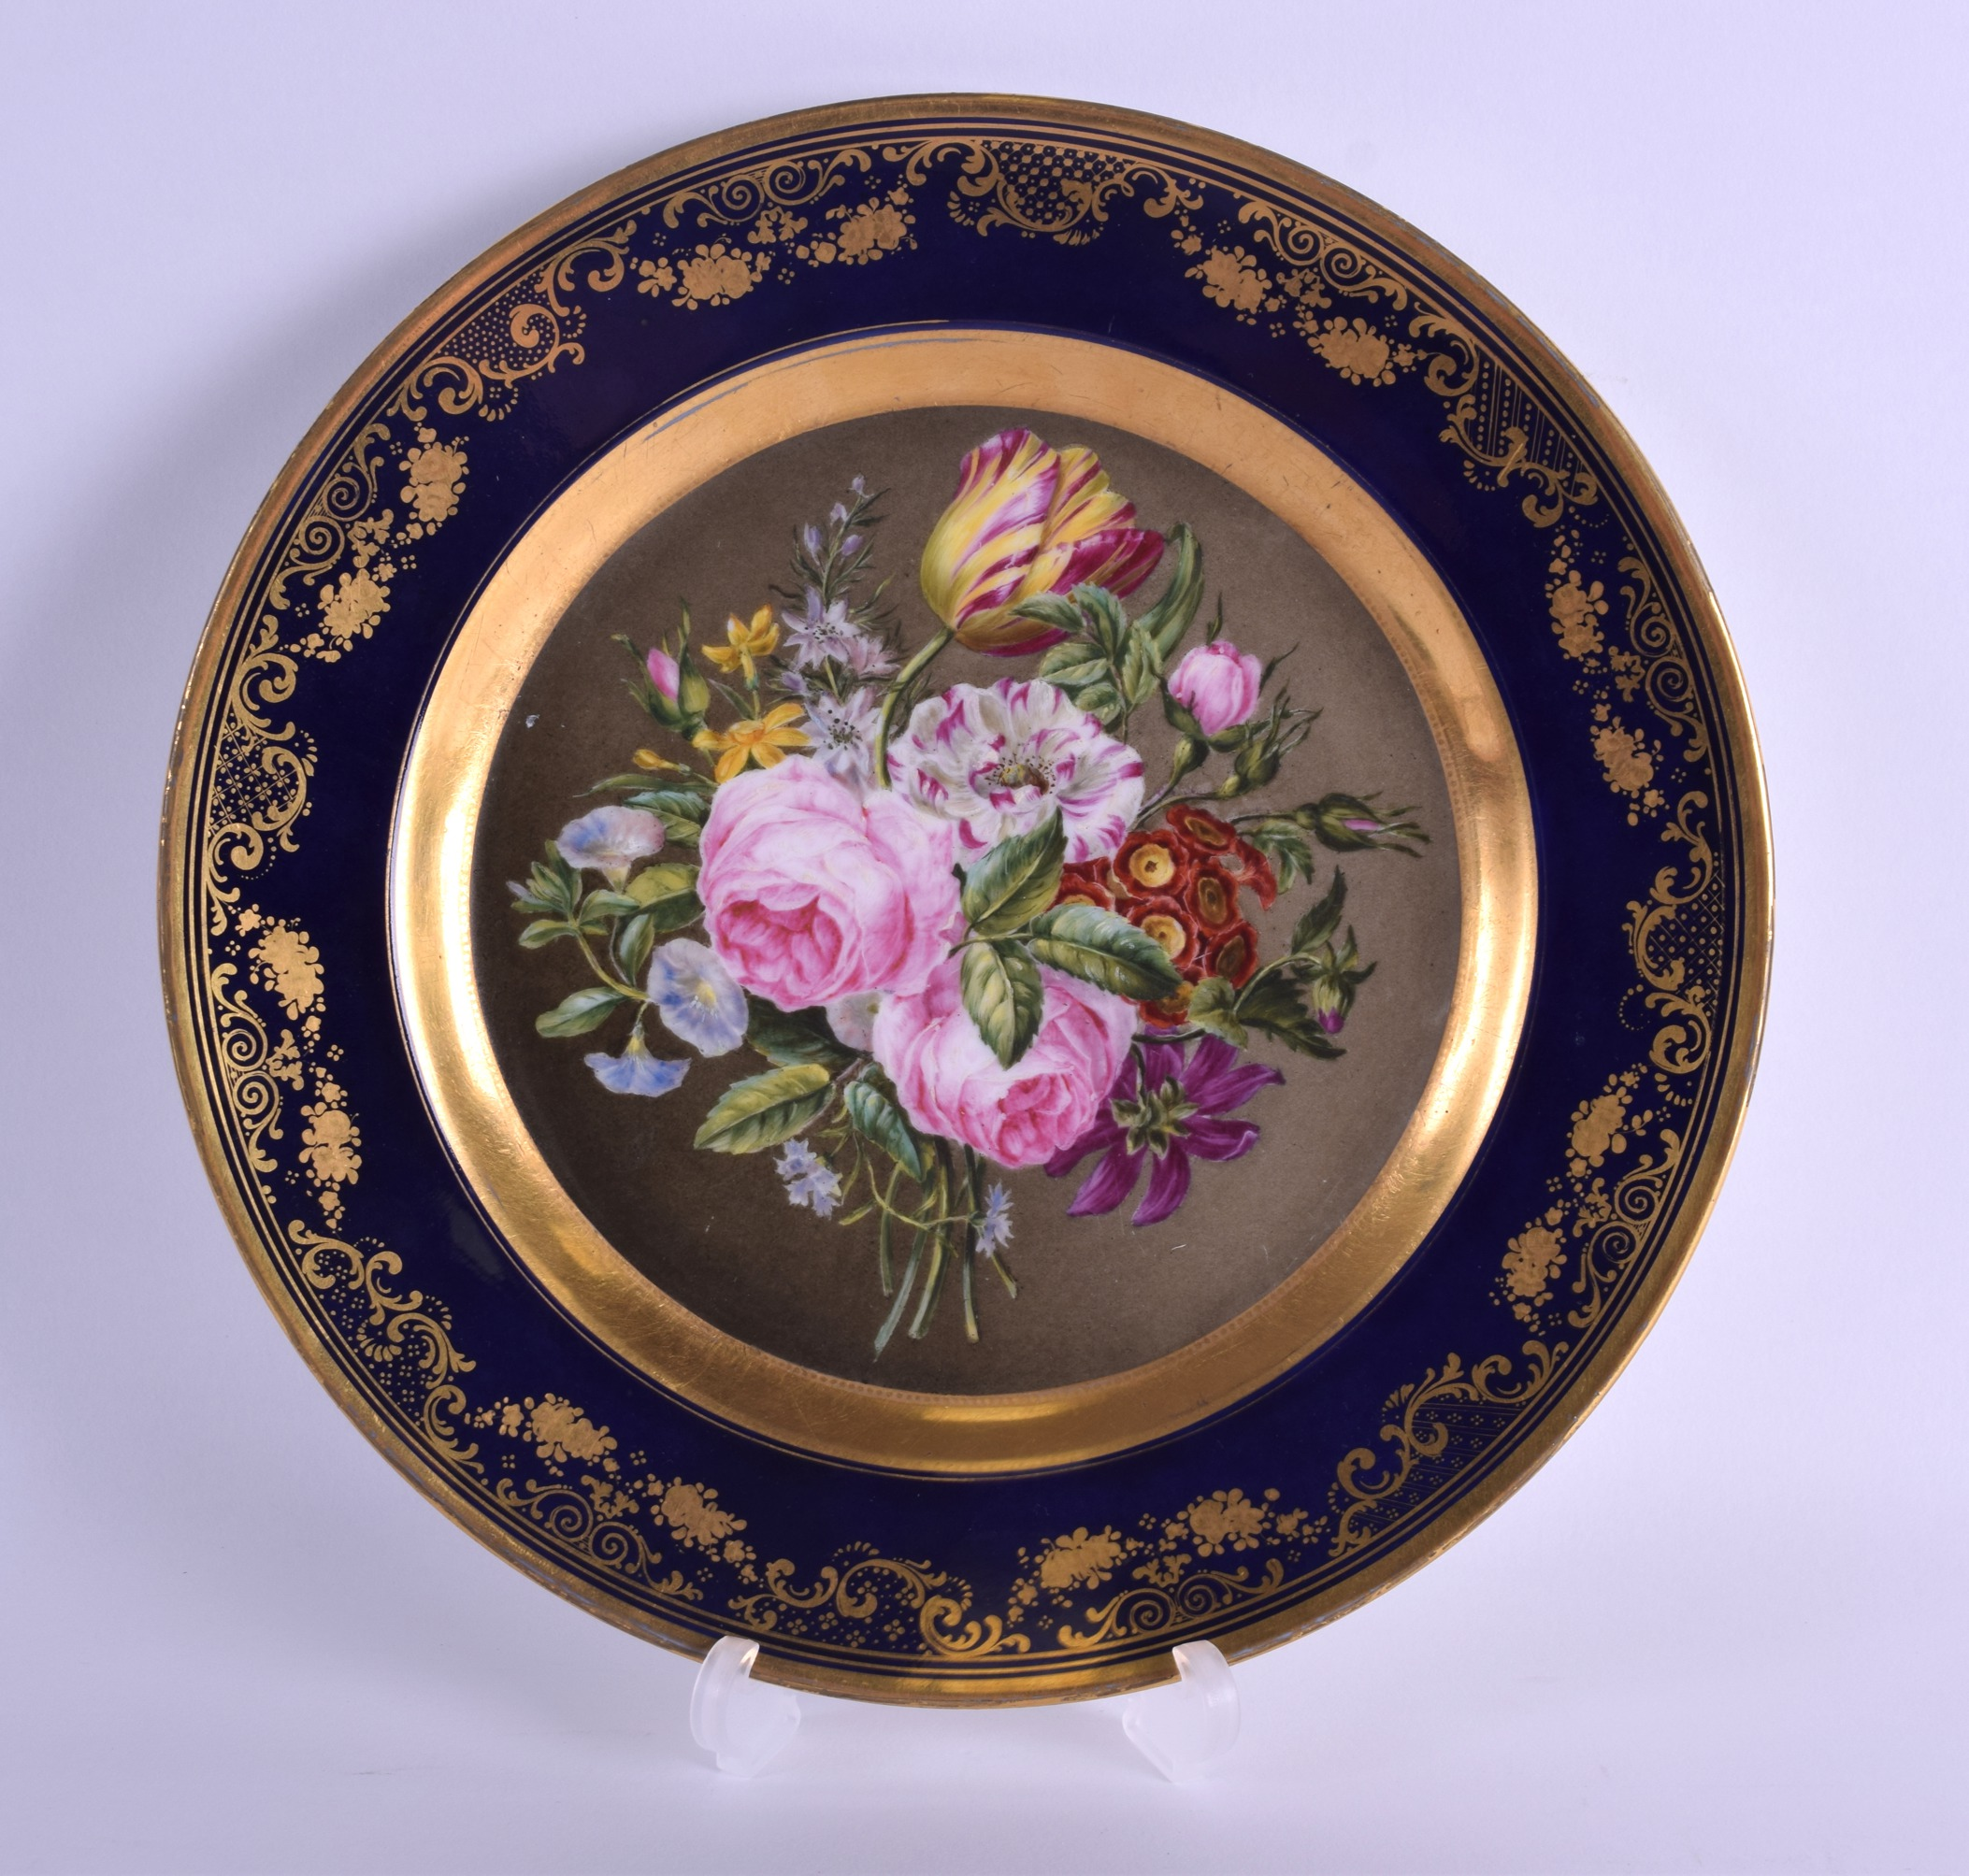 Lot 102 - AN EARLY 19TH CENTURY CHAMBERLAINS WORCESTER CABINET PLATE painted with a bold floral spray within a